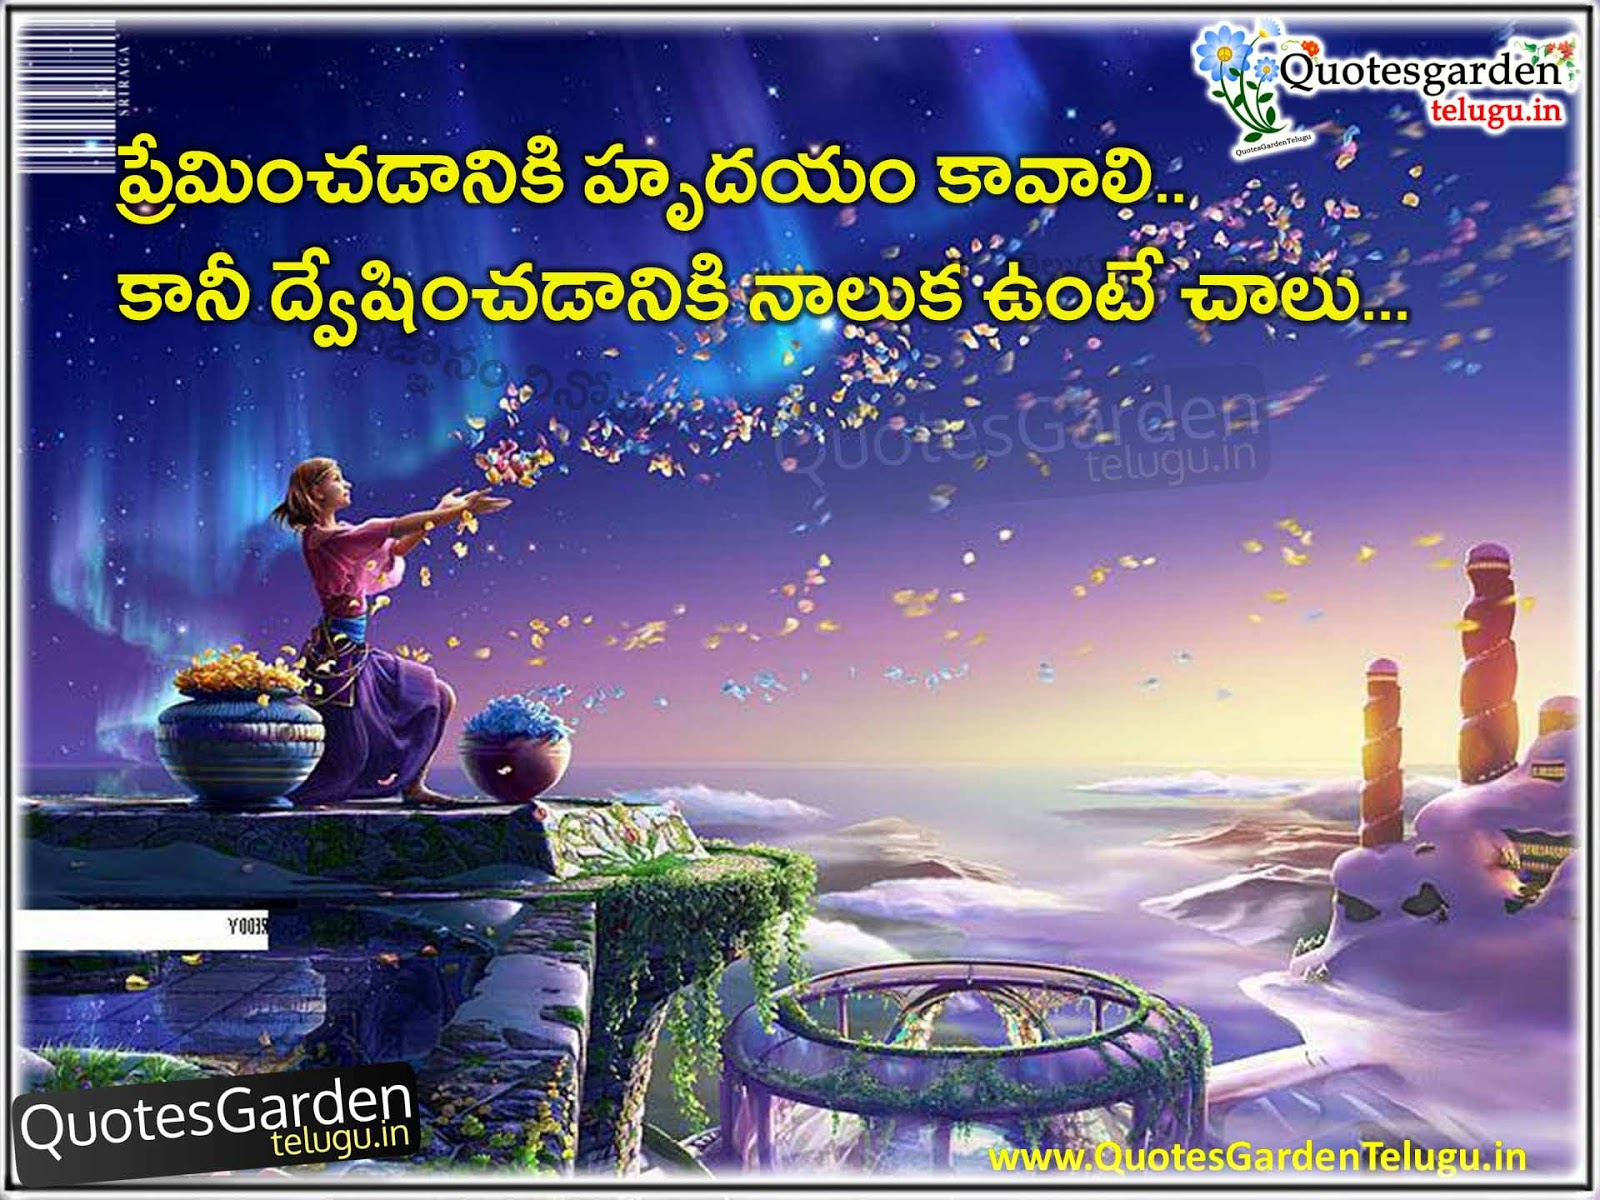 The 50 Best Good Morning Quotes Of All Time: All Time Best Telugu Quotations